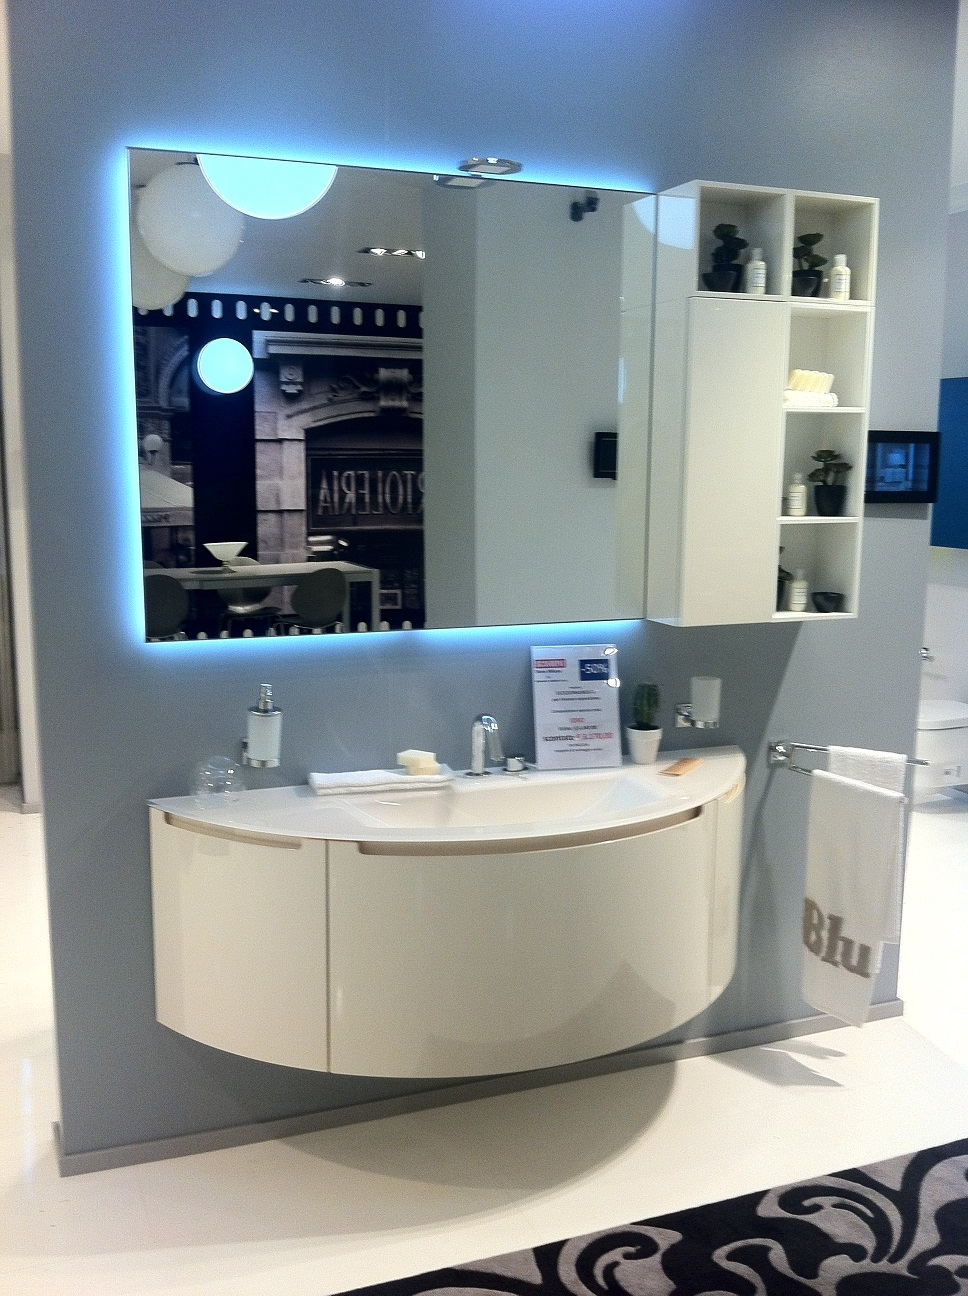 Outlet arredo bagno milano arredo bagno with outlet - Outlet piastrelle bagno ...